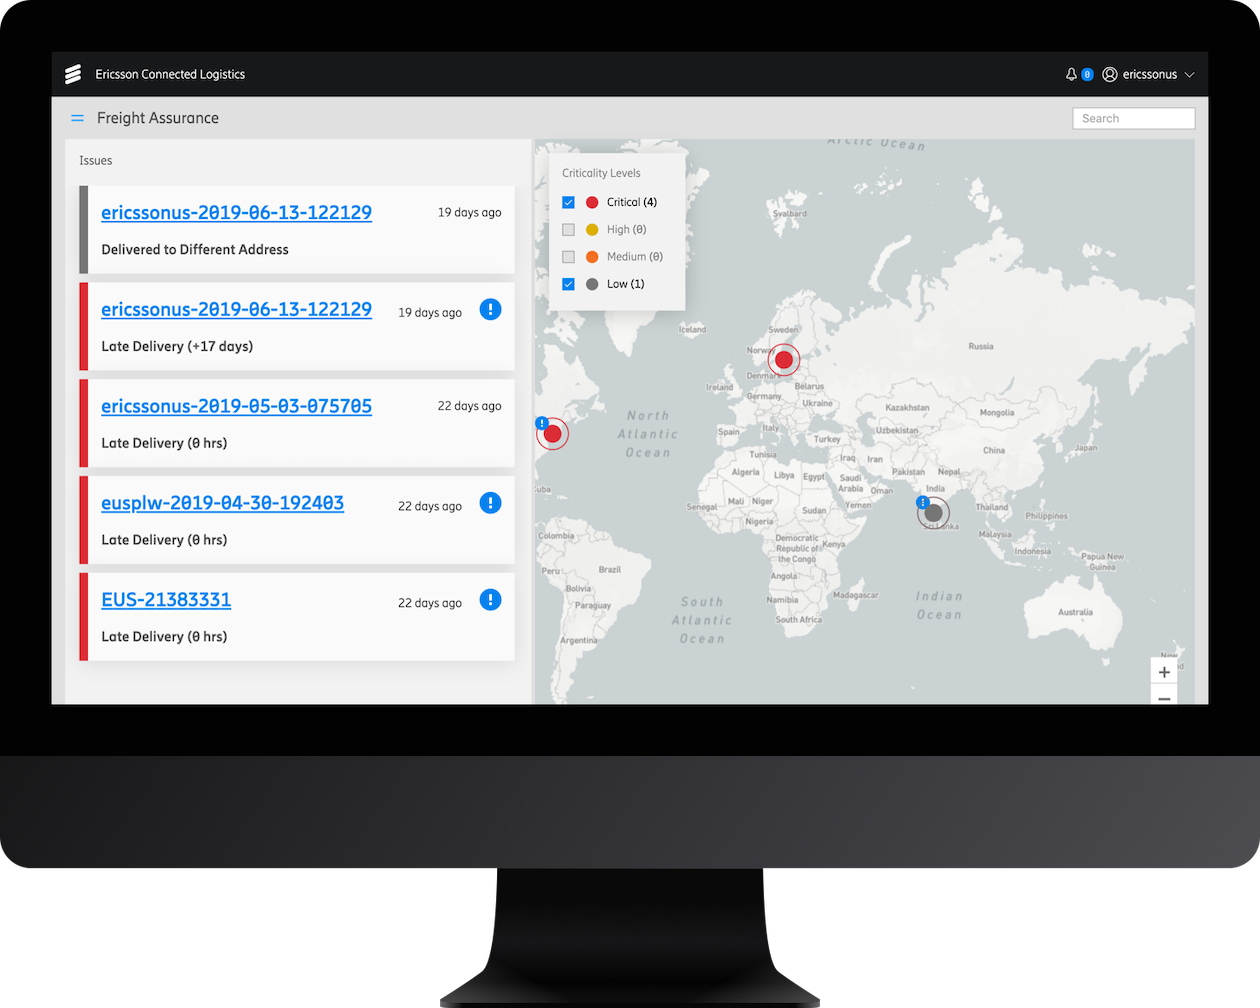 Ericsson's Connected Logistics Chain allows all actors in the supply chain to securely share information via API in order to trace shipments.